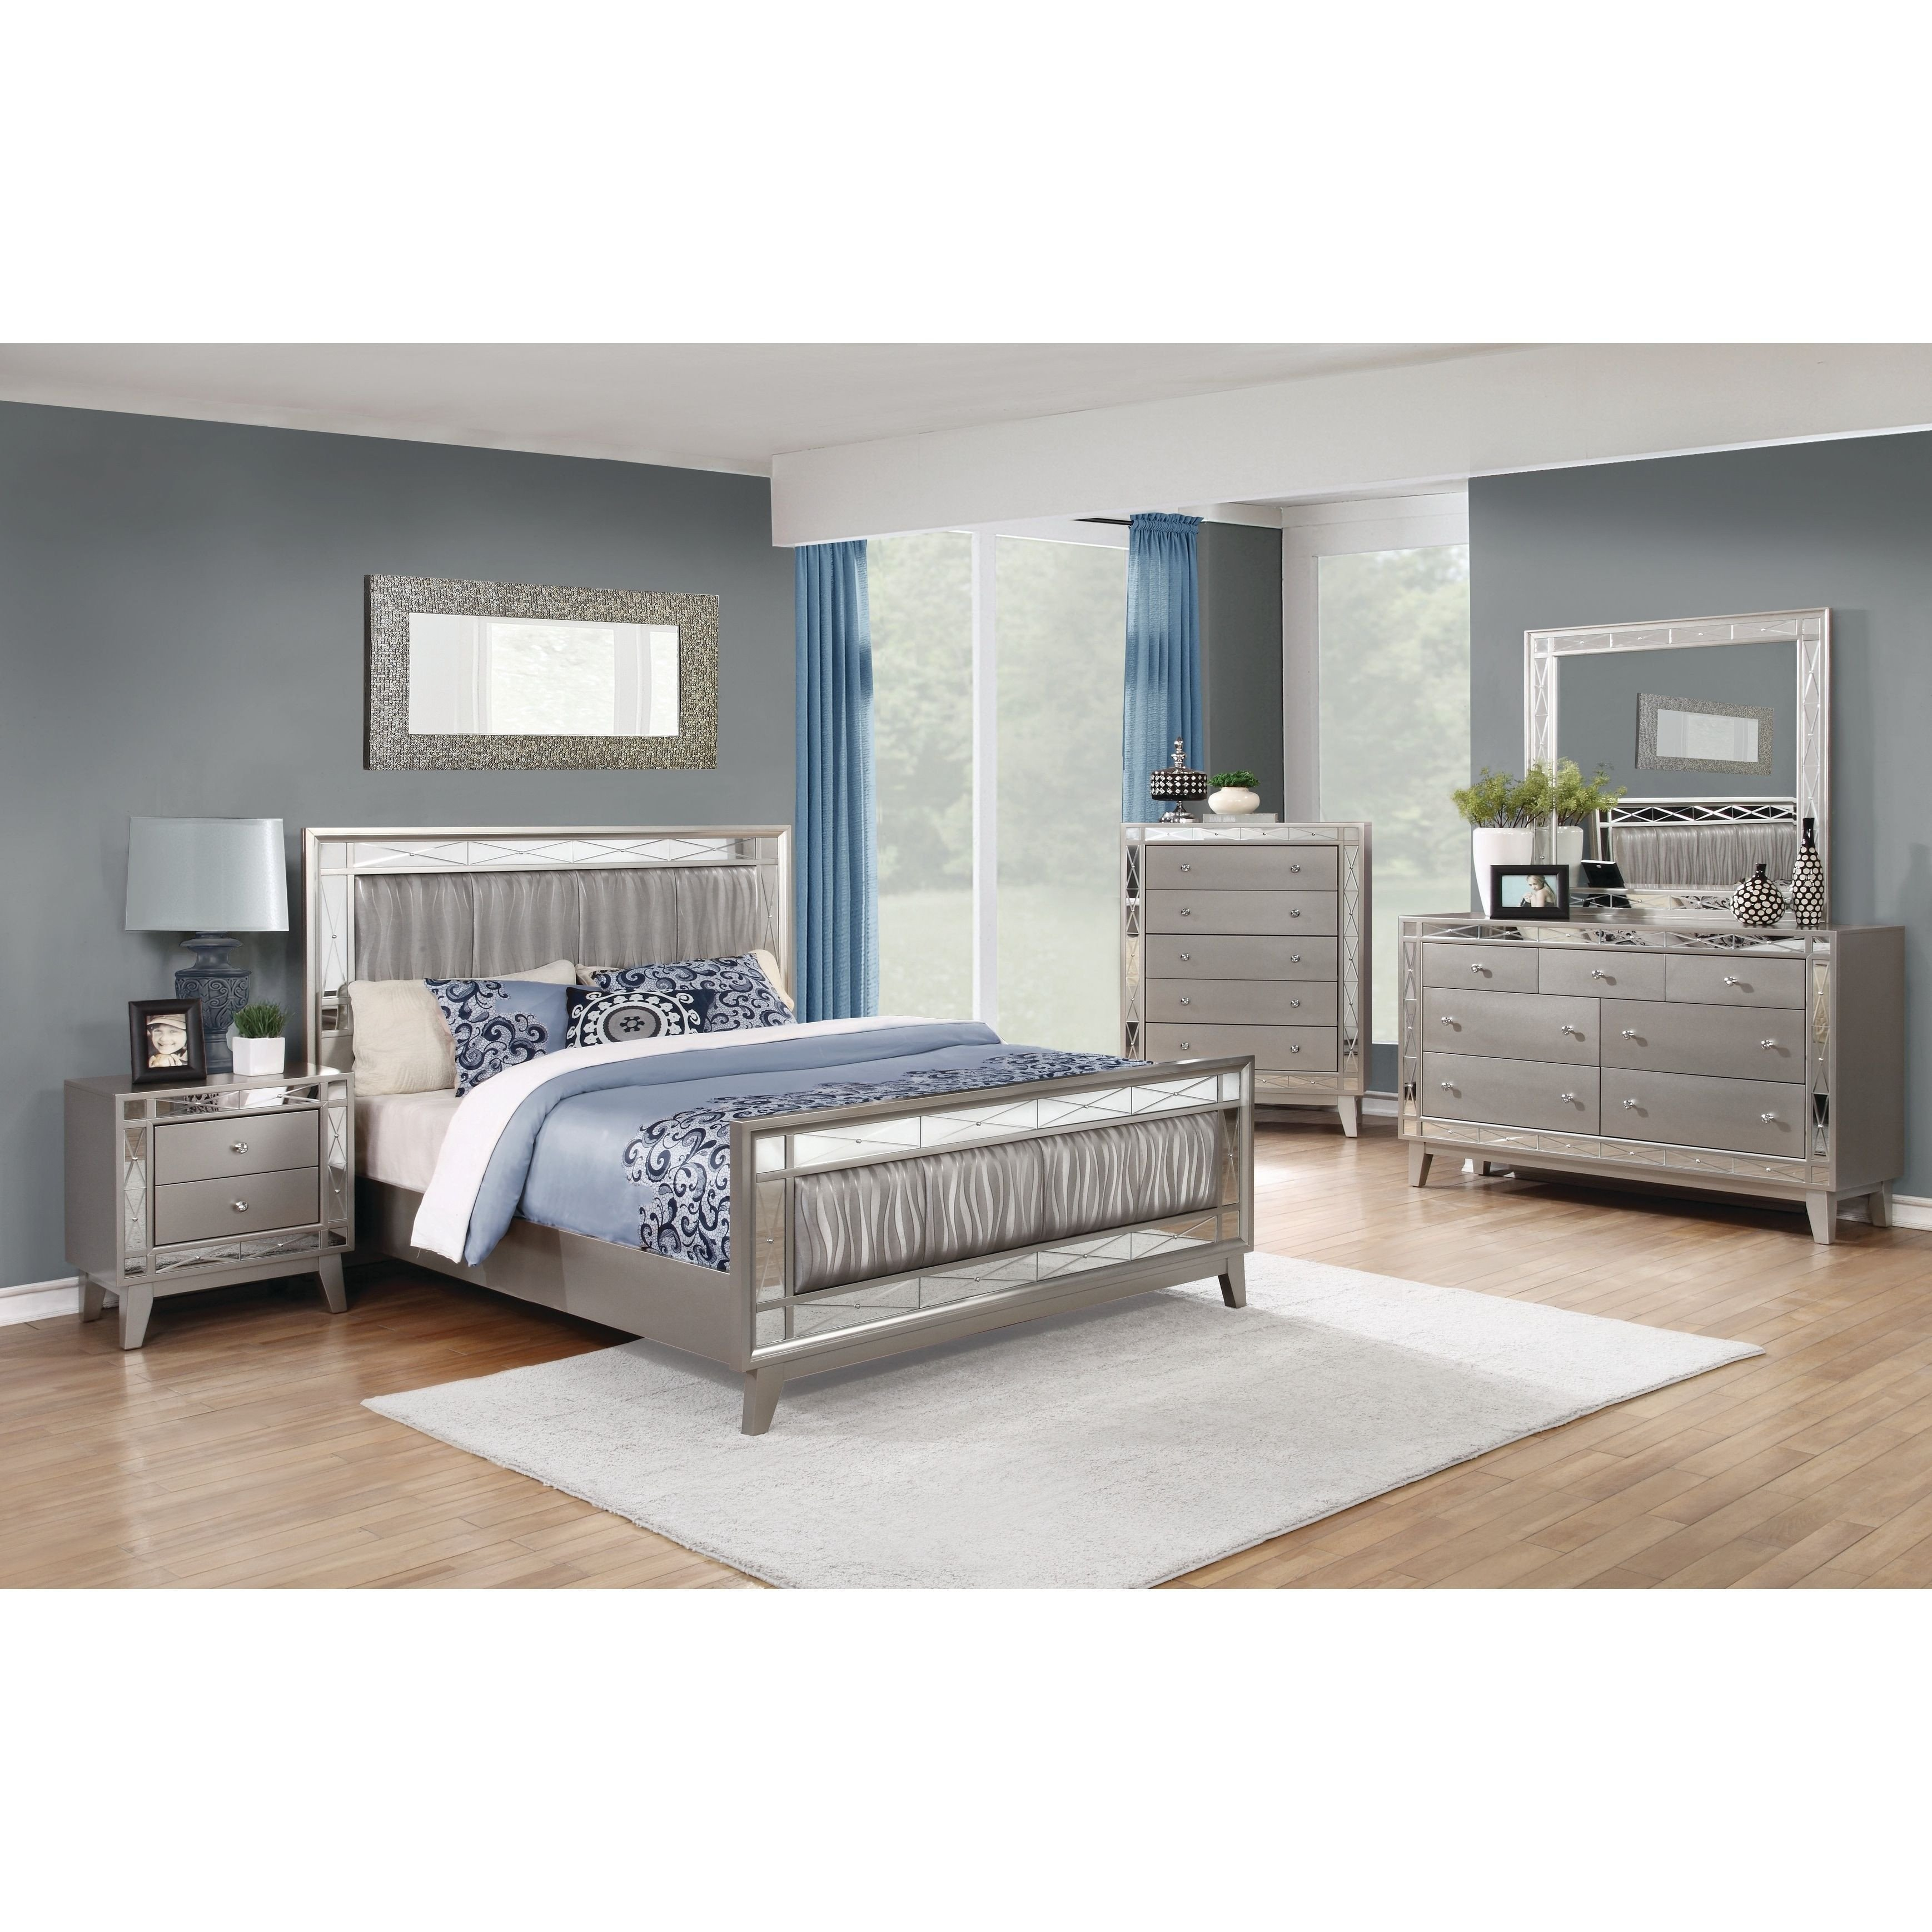 Cheap Bedroom Decor Online Shopping Inspirational Silver orchid Barriscale Contemporary Metallic 5 Piece